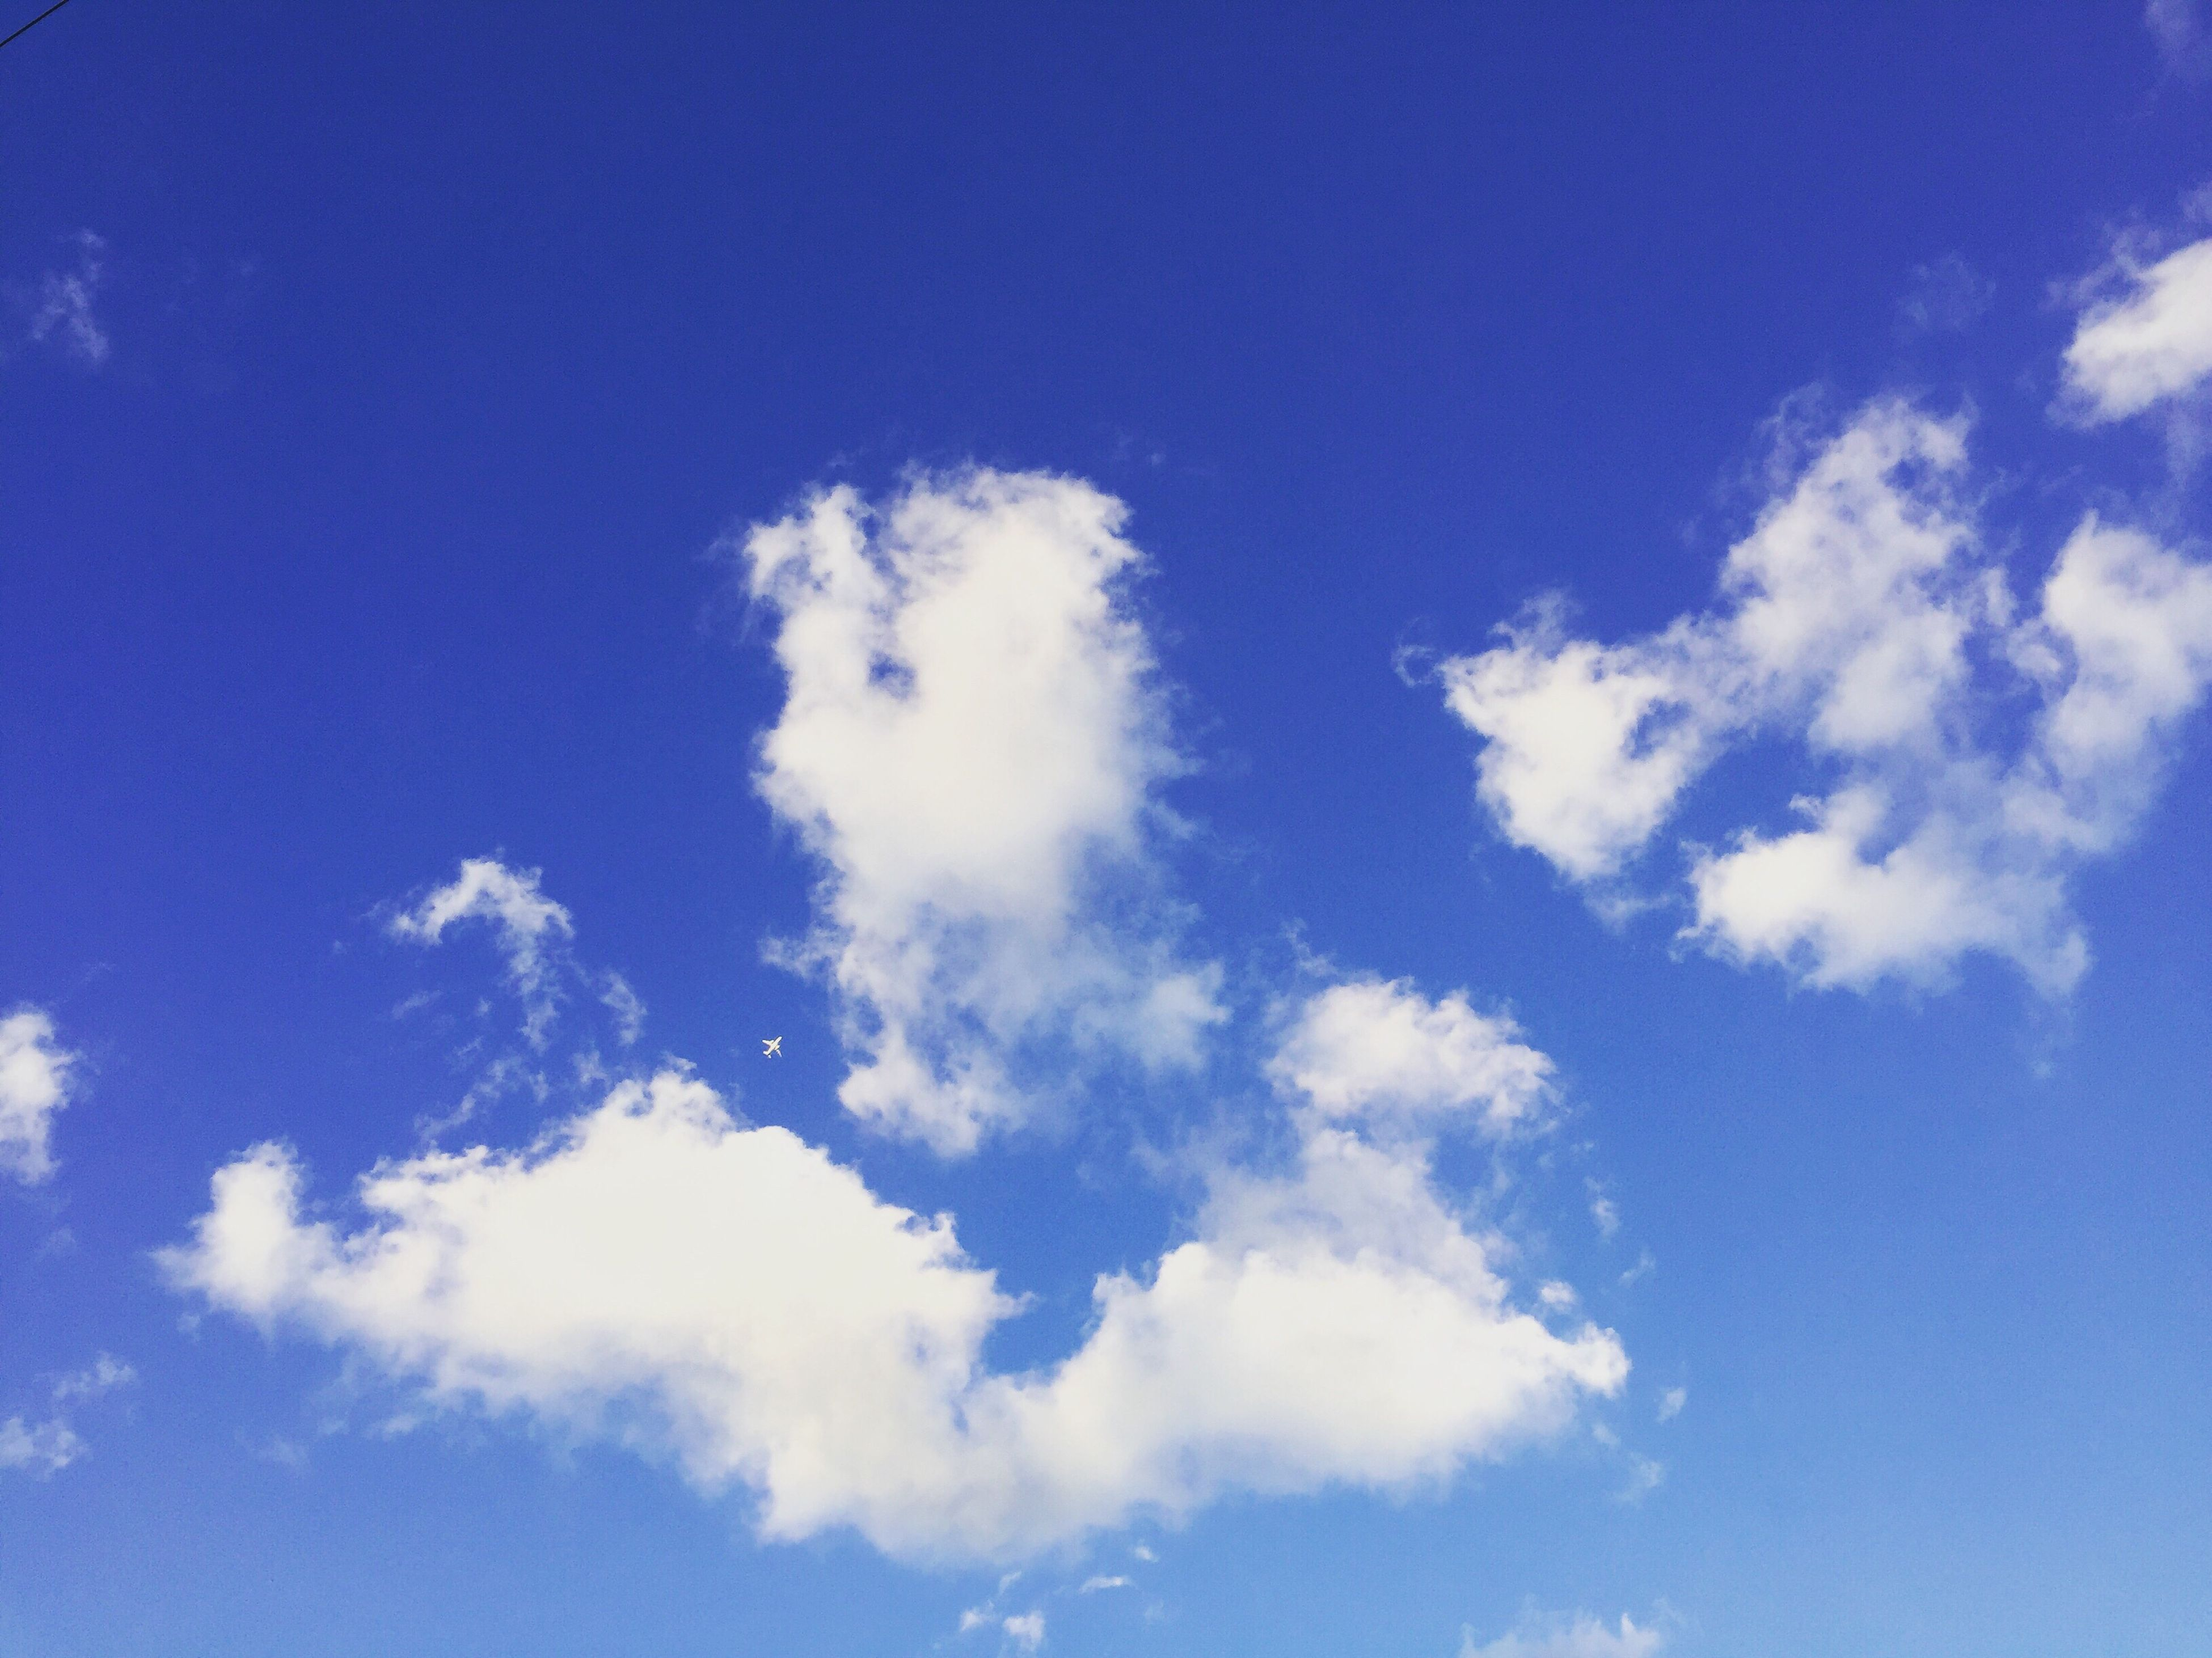 blue, low angle view, sky, sky only, beauty in nature, cloud - sky, tranquility, nature, scenics, tranquil scene, cloud, white color, backgrounds, cloudscape, idyllic, day, outdoors, no people, white, fluffy